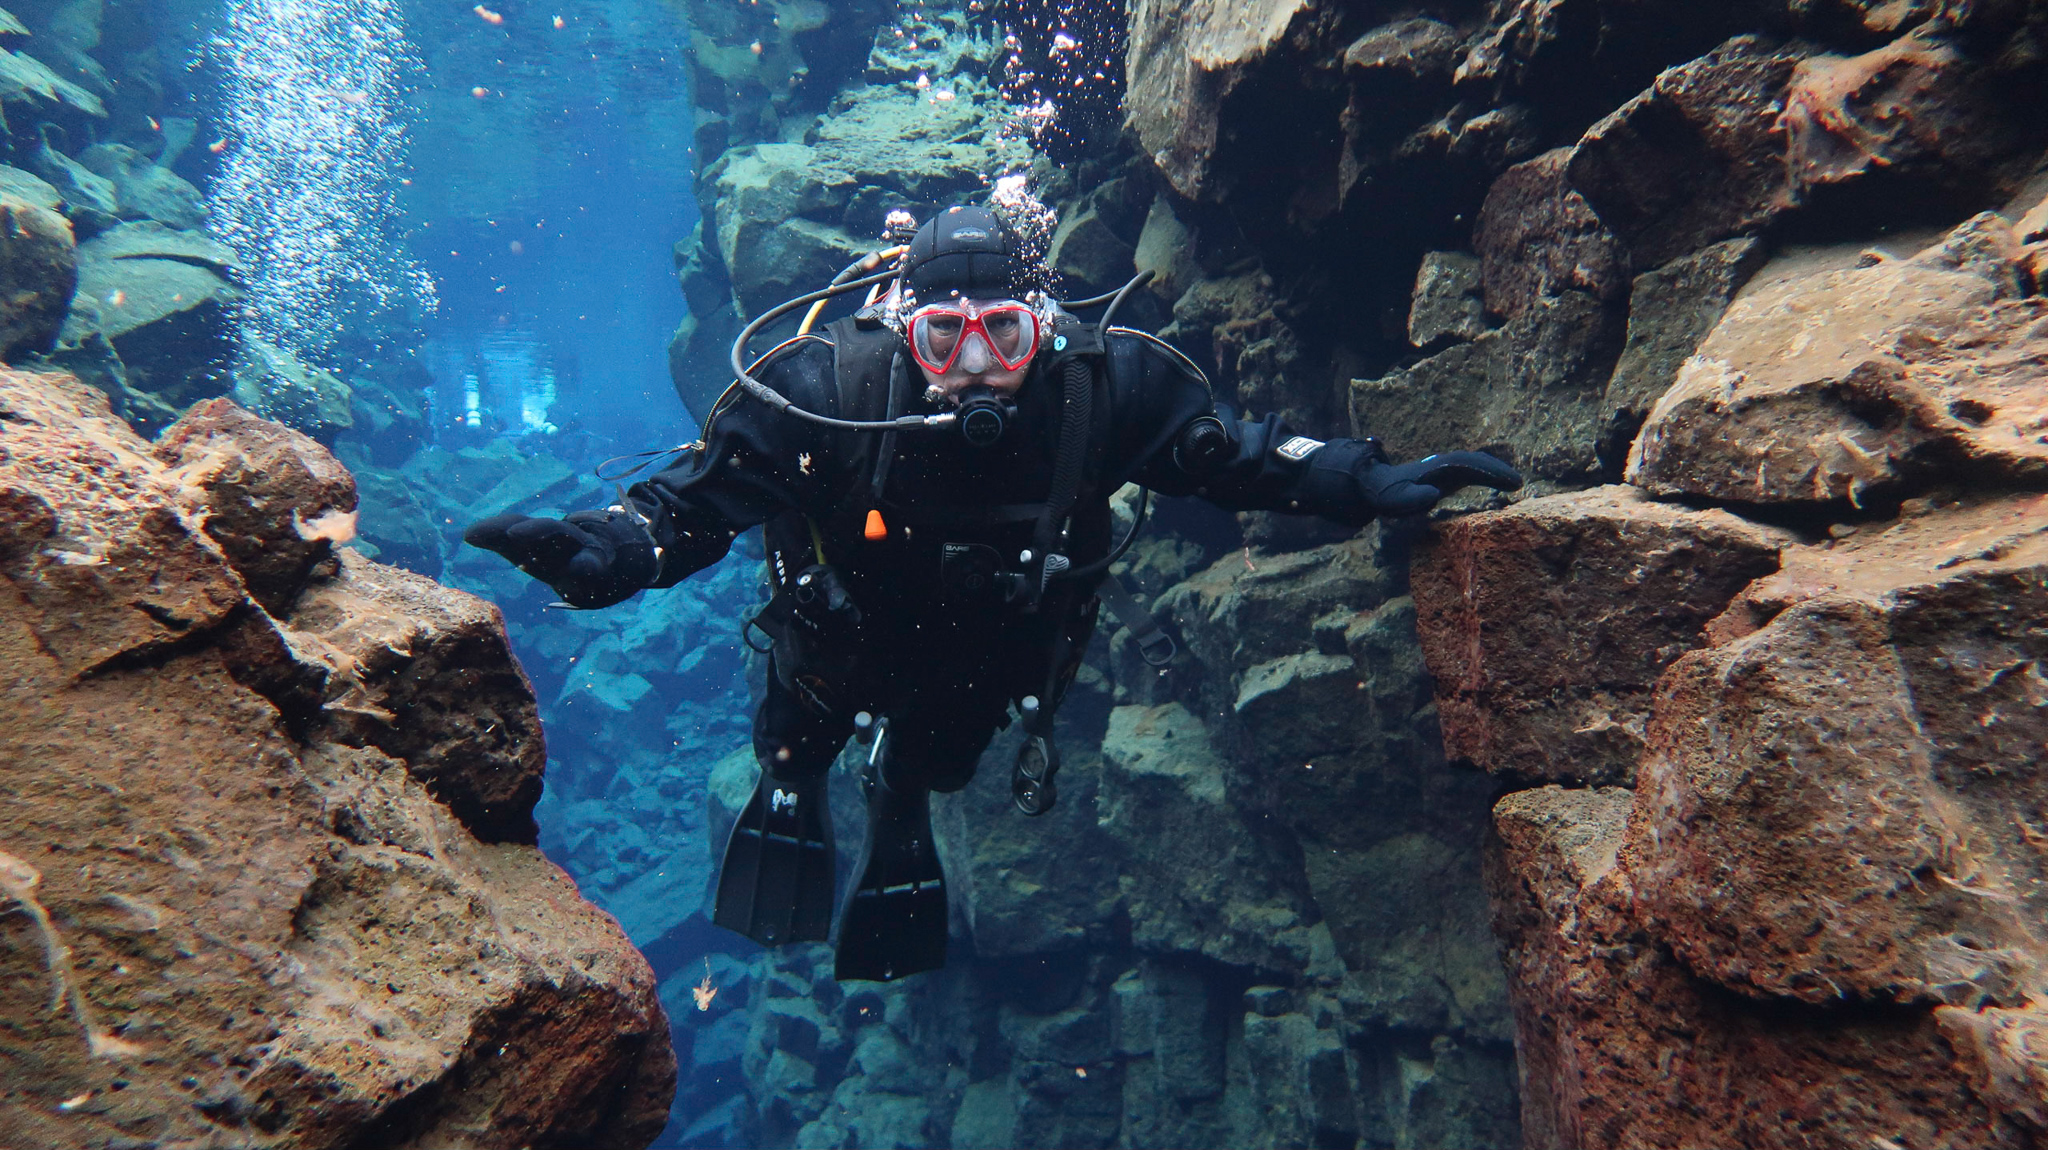 Europe on one side, North America the other while scuba diving at Silfra Fissure in Thingvellir National Park, Iceland. Photo by Tania Roque of DIVE.IS